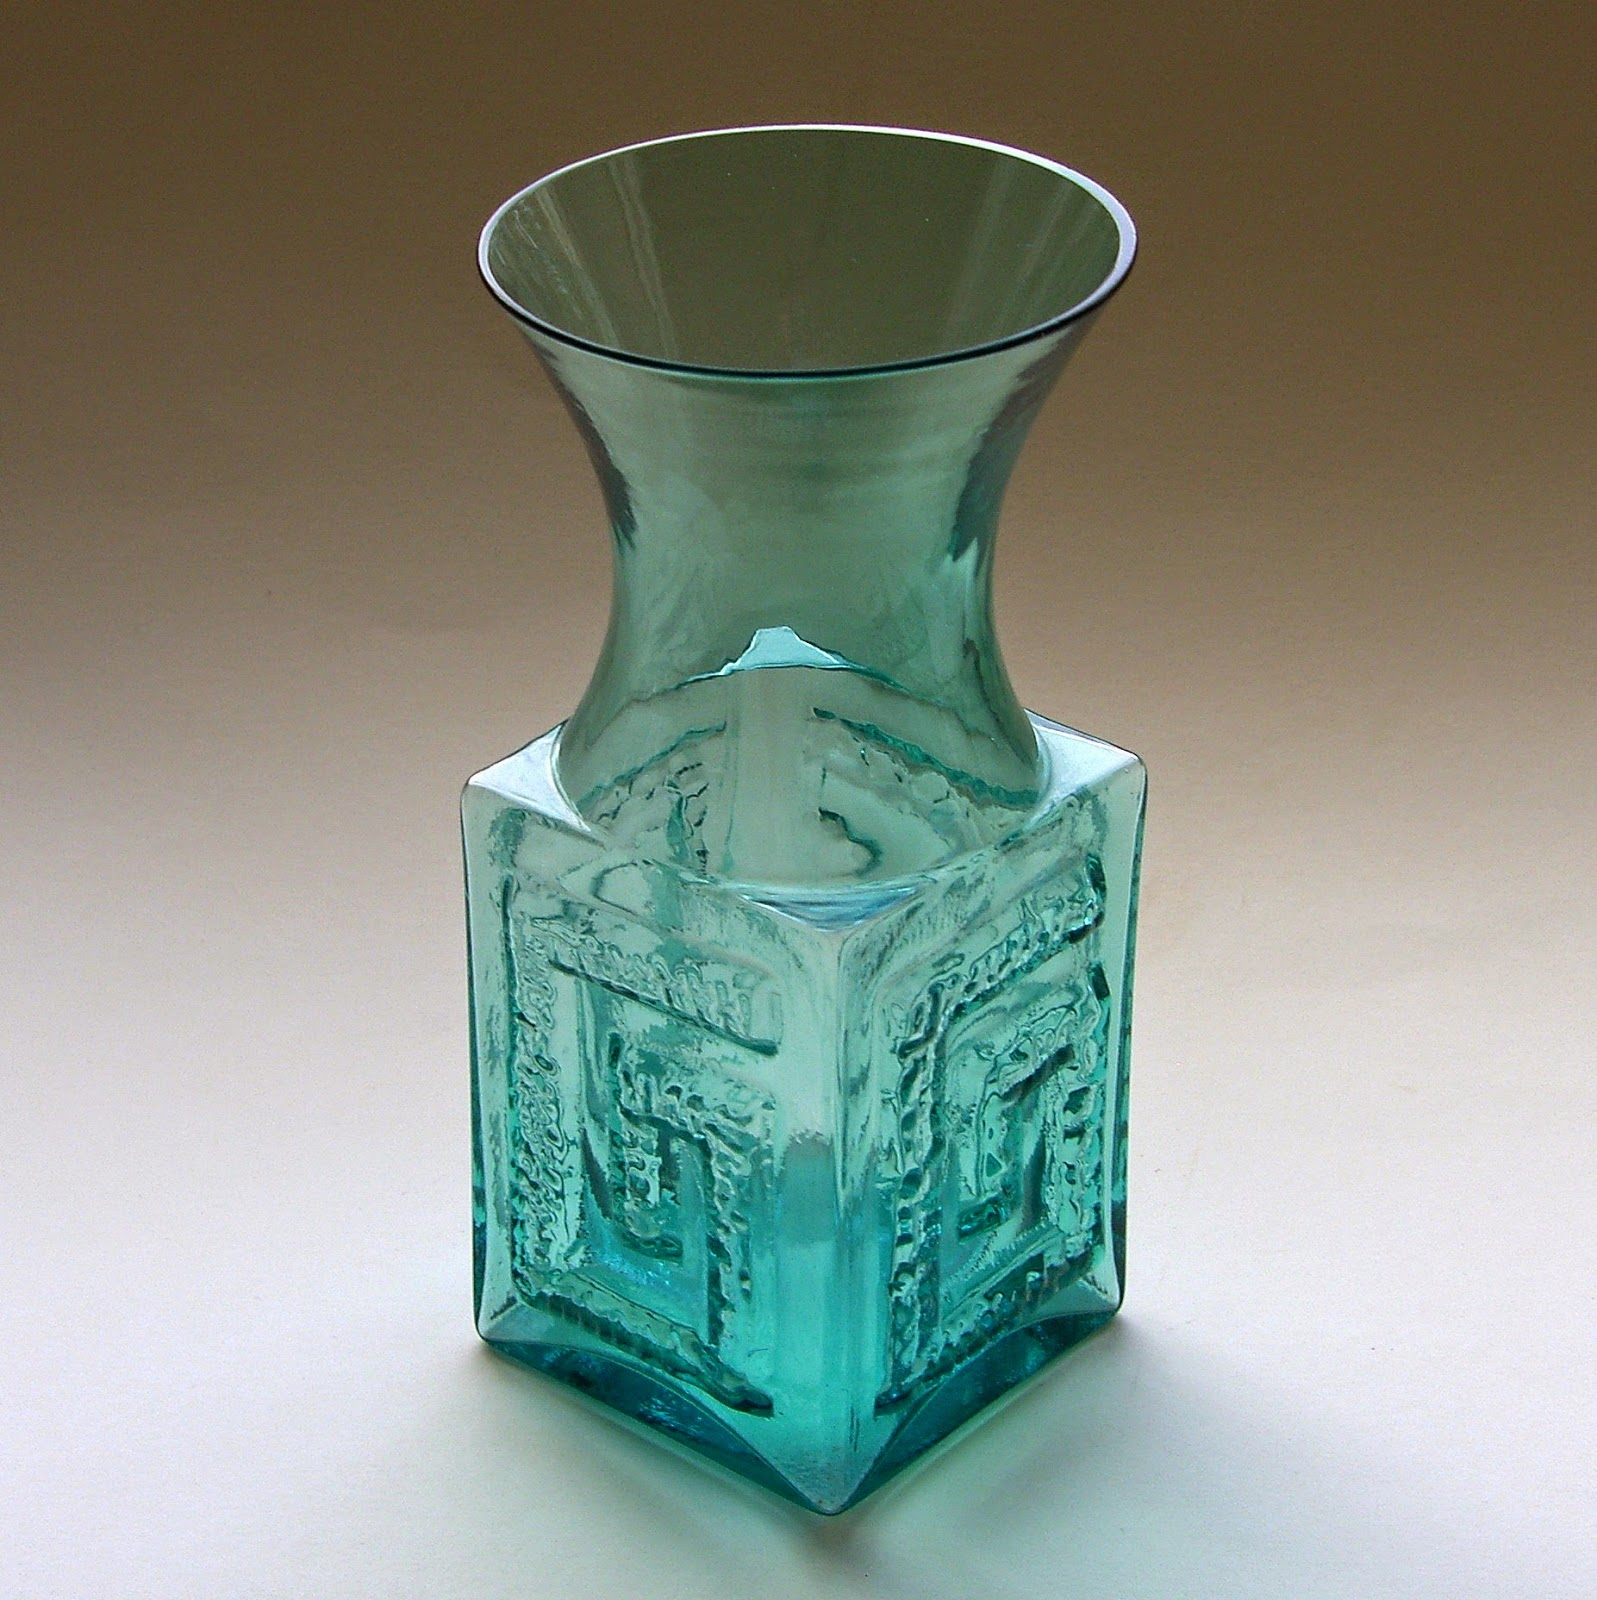 frank thrower glass designs